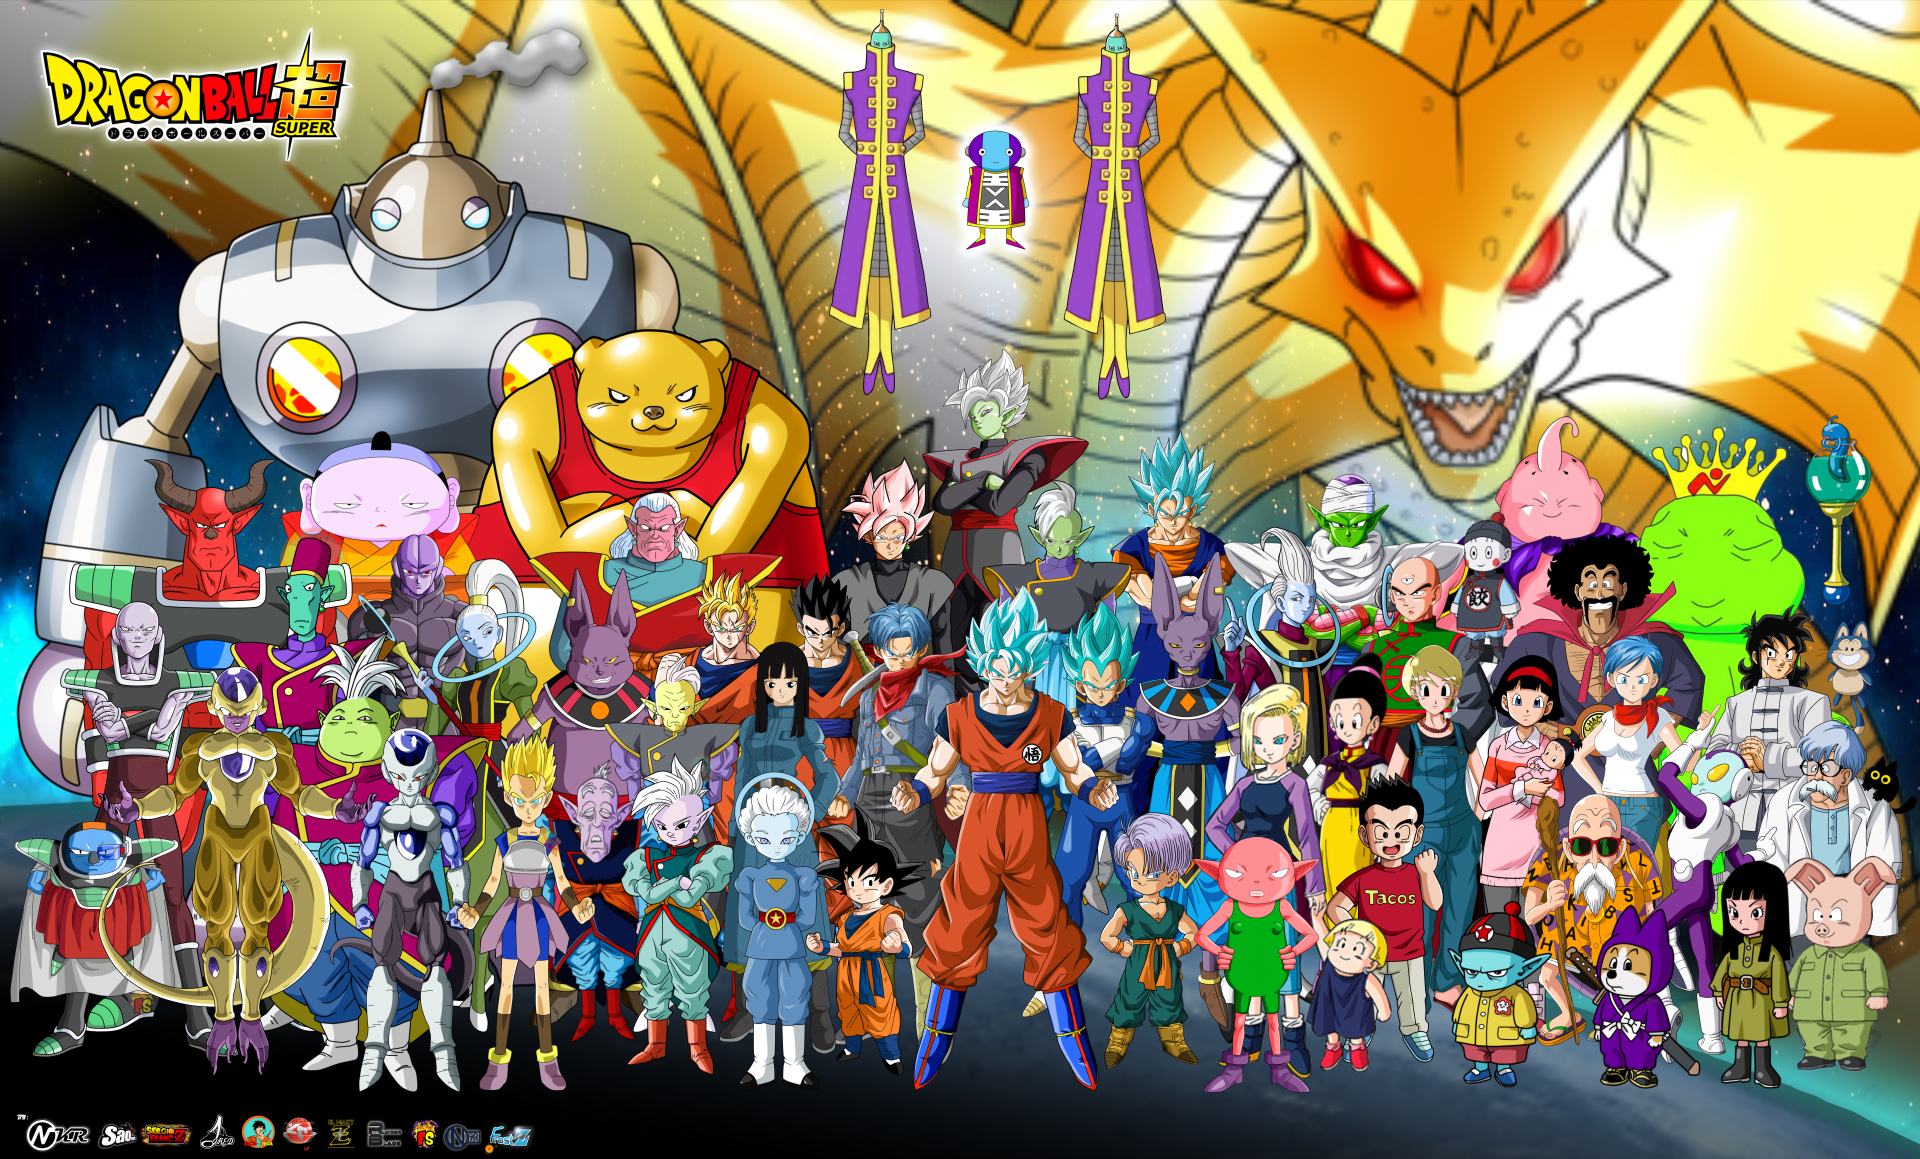 Anime - Dragon Ball Super  Goku Vegeta (Dragon Ball) SSGSS Goku SSGSS Vegeta Vegito (Dragon Ball) SSGSS Vegito Black (Dragon Ball) Black Goku SSR Black Zamasu (Dragon Ball) Piccolo (Dragon Ball) Zeno (Dragon Ball) Beerus (Dragon Ball) Whis (Dragon Ball) Android 18 (Dragon Ball) Krillin (Dragon Ball) Gohan (Dragon Ball) Mai (Dragon Ball) Videl (Dragon Ball) Trunks (Dragon Ball) Yamcha (Dragon Ball) Puar (Dragon Ball) Tien Shinhan (Dragon Ball) Chiaotzu (Dragon Ball) Bulma (Dragon Ball) Pan (Dragon Ball) Hercule (Dragon Ball) Master Roshi (Dragon Ball) Majin Buu Oolong (Dragon Ball) Marron (Dragon Ball) Jaco Teirimentenpibosshi Hit (Dragon Ball) Champa (Dragon Ball) Vados (Dragon Ball) Frieza (Dragon Ball) Supreme Kai (Dragon Ball) Goten (Dragon Ball) Kibito (Dragon Ball) Pilaf (Dragon Ball) Shu (Dragon Ball) Dr. Brief (Dragon Ball) Scratch (dragon ball) Zarama (Dragon Ball) Magetta (Dragon Ball) Frost (Dragon Ball) Kyabe (Dragon Ball) Botamo (Dragon Ball) Old Kai (Dragon Ball) Tights (Dragon Ball) Chichi (Dragon Ball) Dragon Ball Galactic King (Dragon Ball) Tagoma (Dragon Ball) Gowasu (Dragon Ball) Grand Priest (Dragon Ball) Zuno (Dragon Ball) Sorbet (Dragon Ball) Shisami (Dragon Ball) Monaka (Dragon Ball) Bakgrund